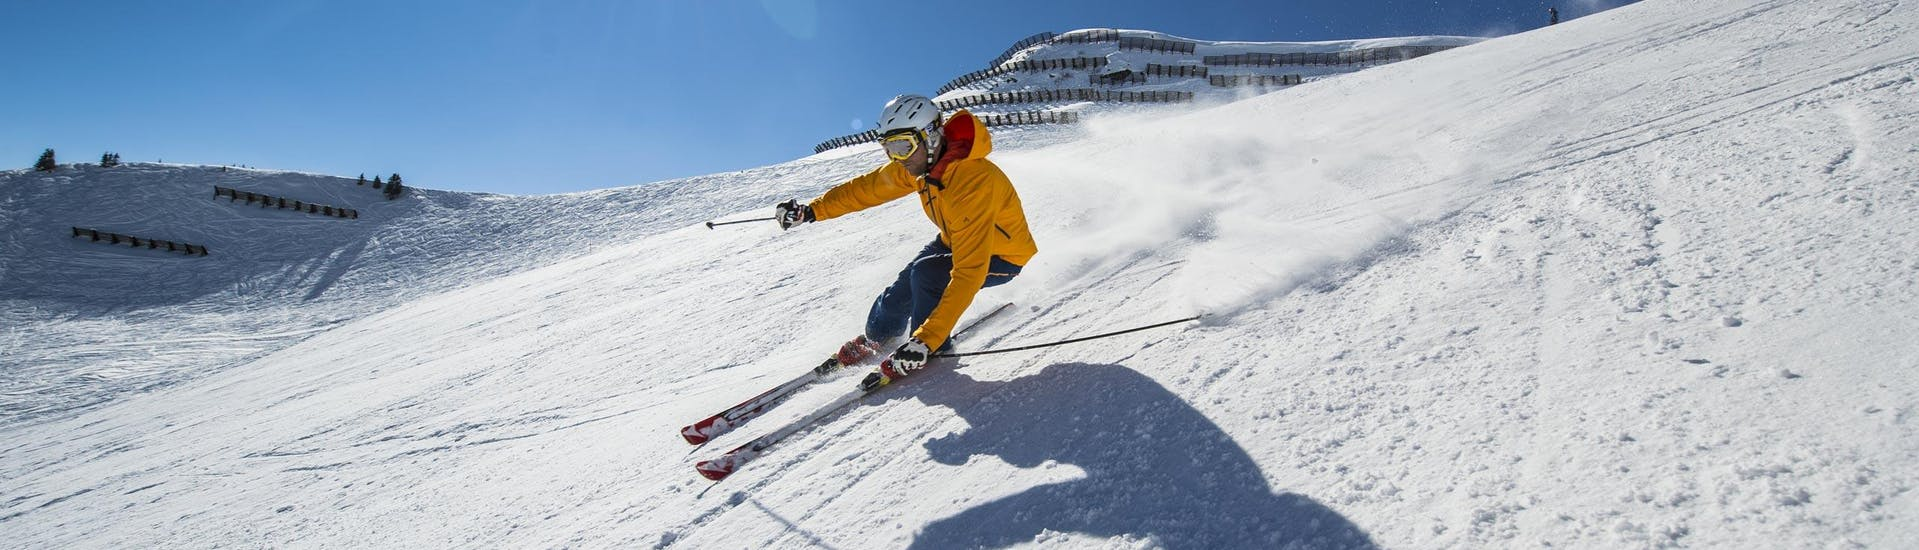 Ski Instructor Private for Adults - All Levels: A skier is skiing down a sunny ski slope while participating in an activity offered by Skischool Dienten.